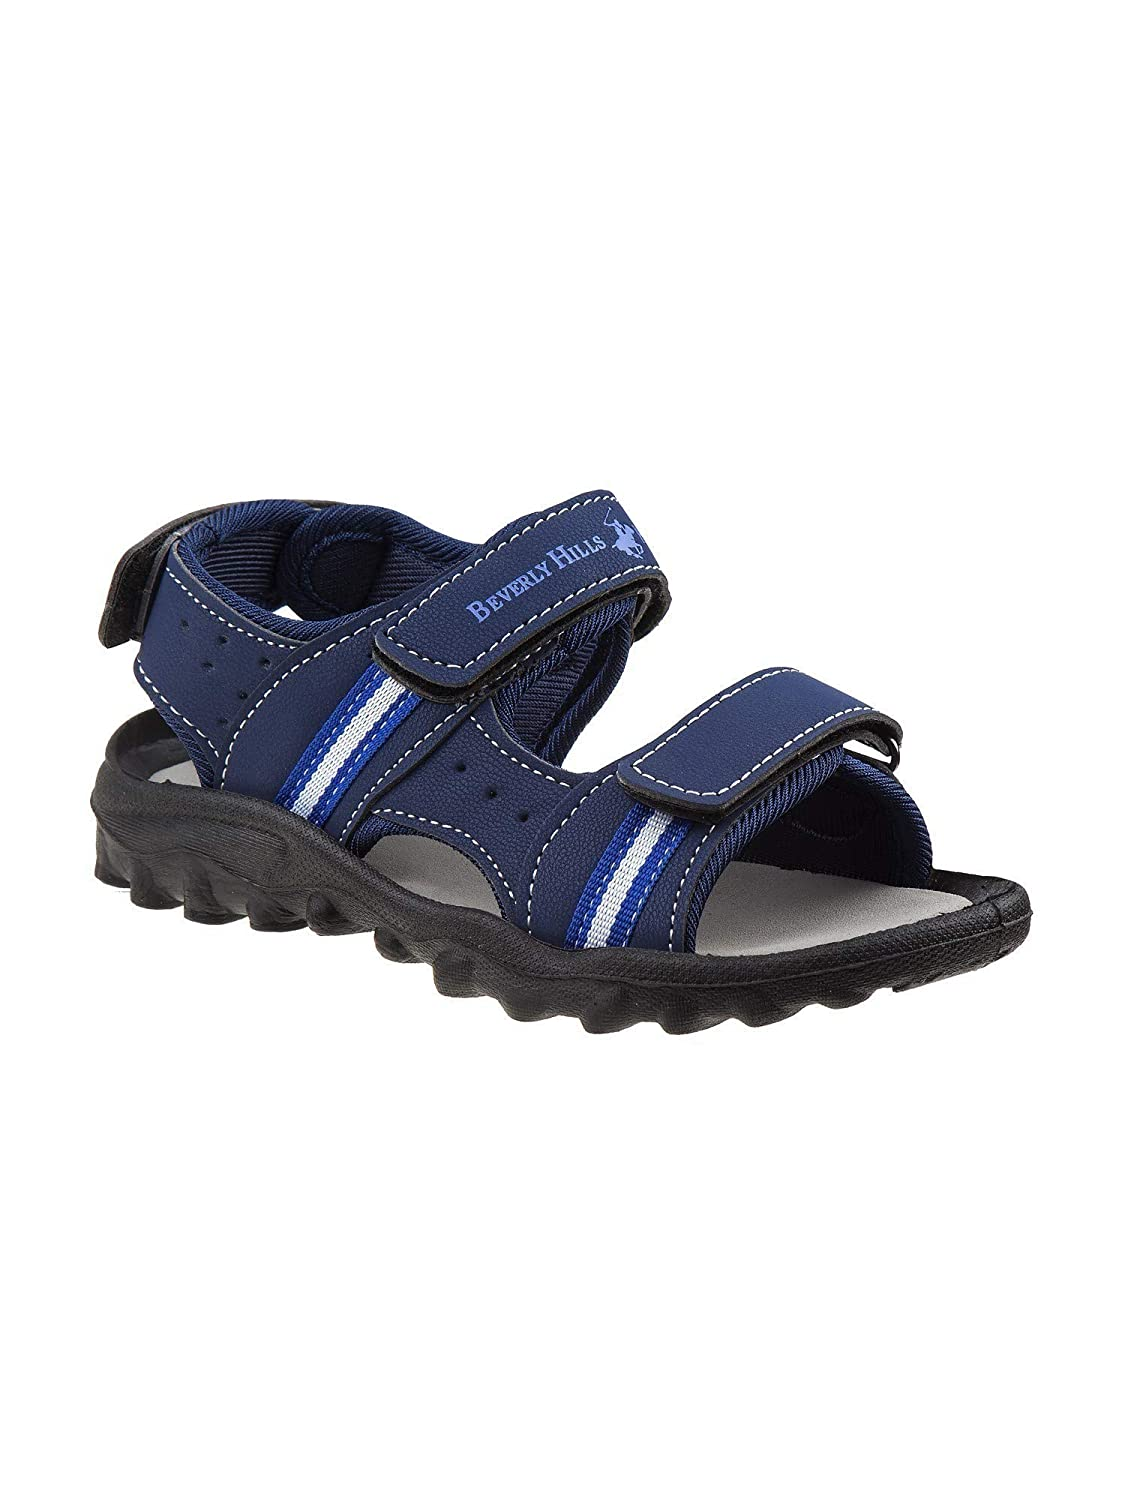 Beverly Hills Little Boys Navy Blue Hook-and-Loop Athletic Sandals 6-10 Toddler